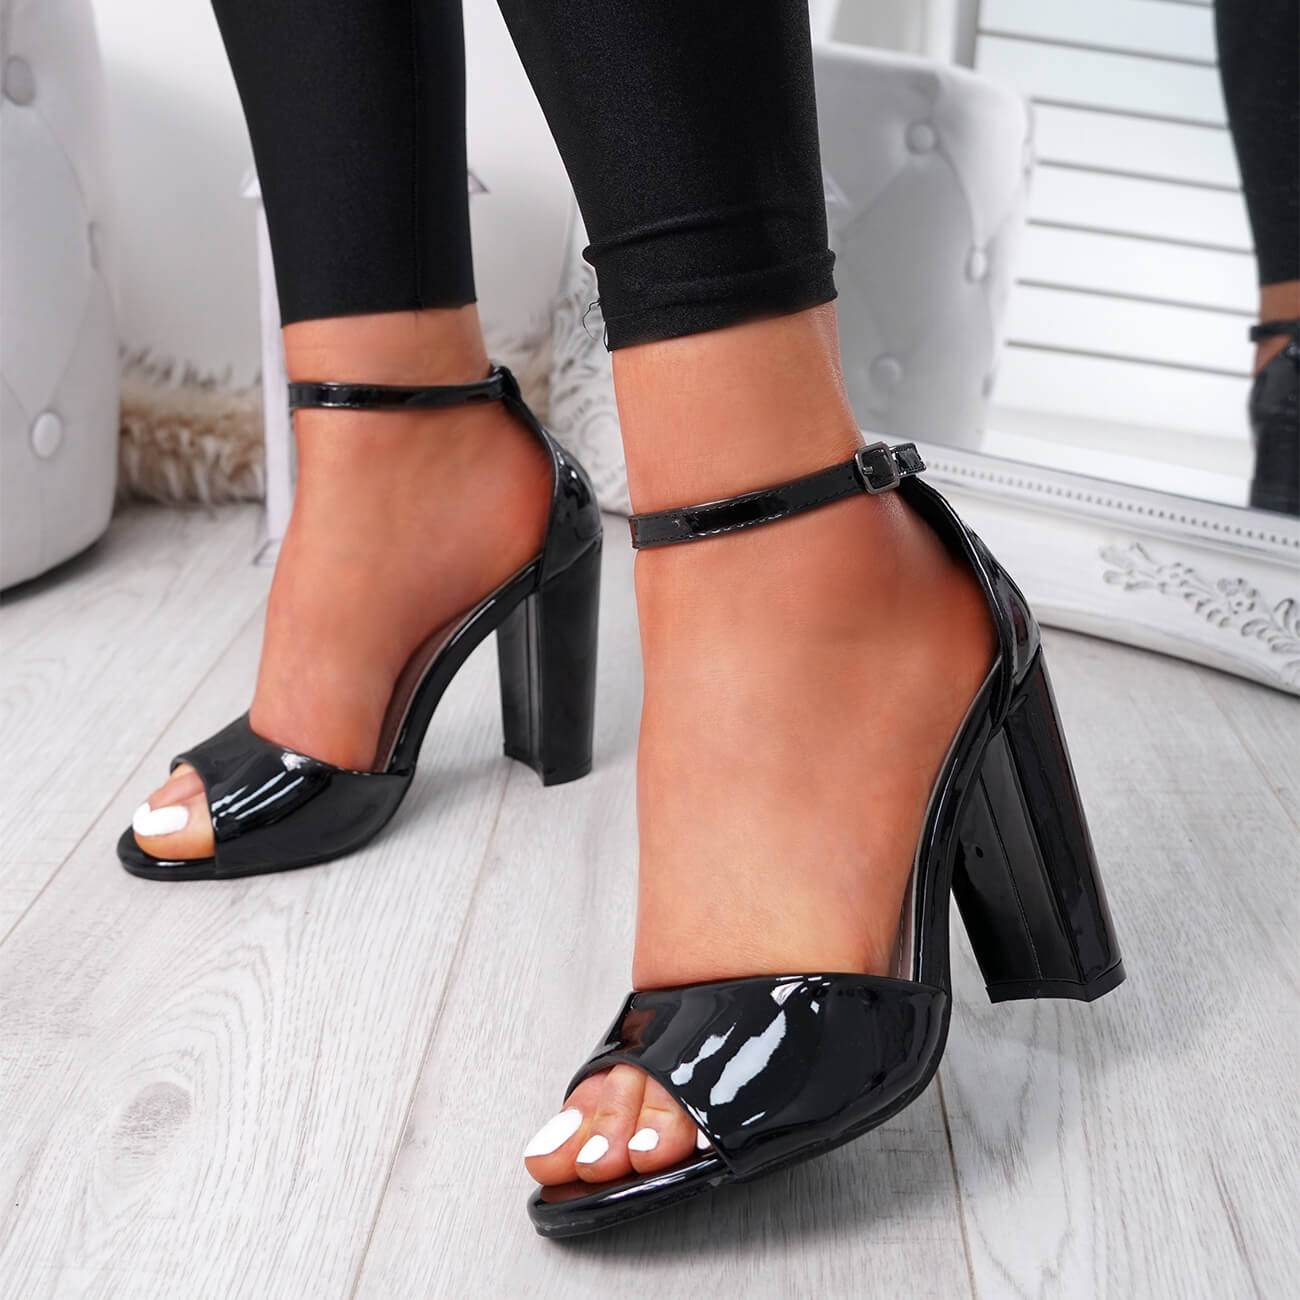 WOMENS-LADIES-ANKLE-STRAP-HIGH-BLOCK-HEEL-SANDALS-PEEP-TOE-OFFICE-CASUAL-SHOES thumbnail 14